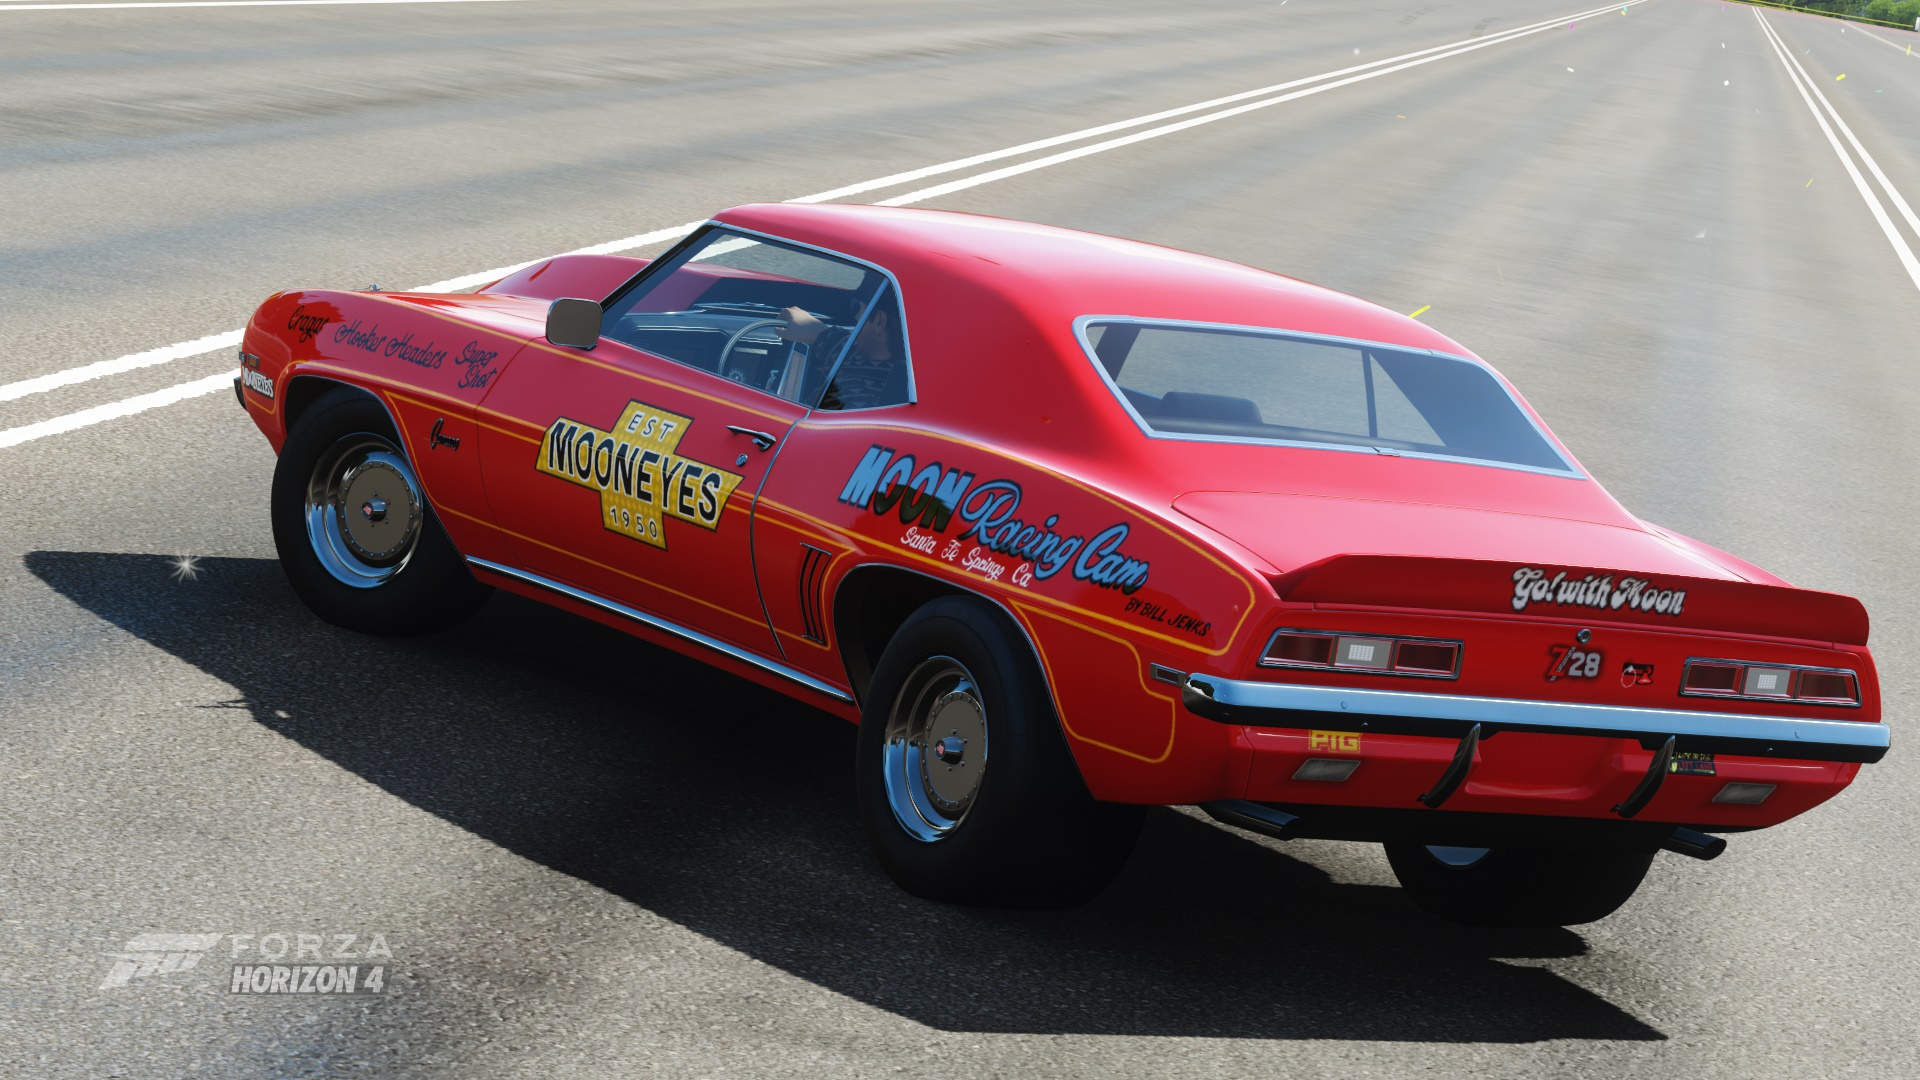 Forza Horizon 4 Livery Contest Liverycomp7 Always Note New Rules 1969 Ford Crown Victoria Car Chevrolet Camaro File Name Mooneyes Japan Gamer Tag Ptg Ace Ventura Race7 Replica Prize